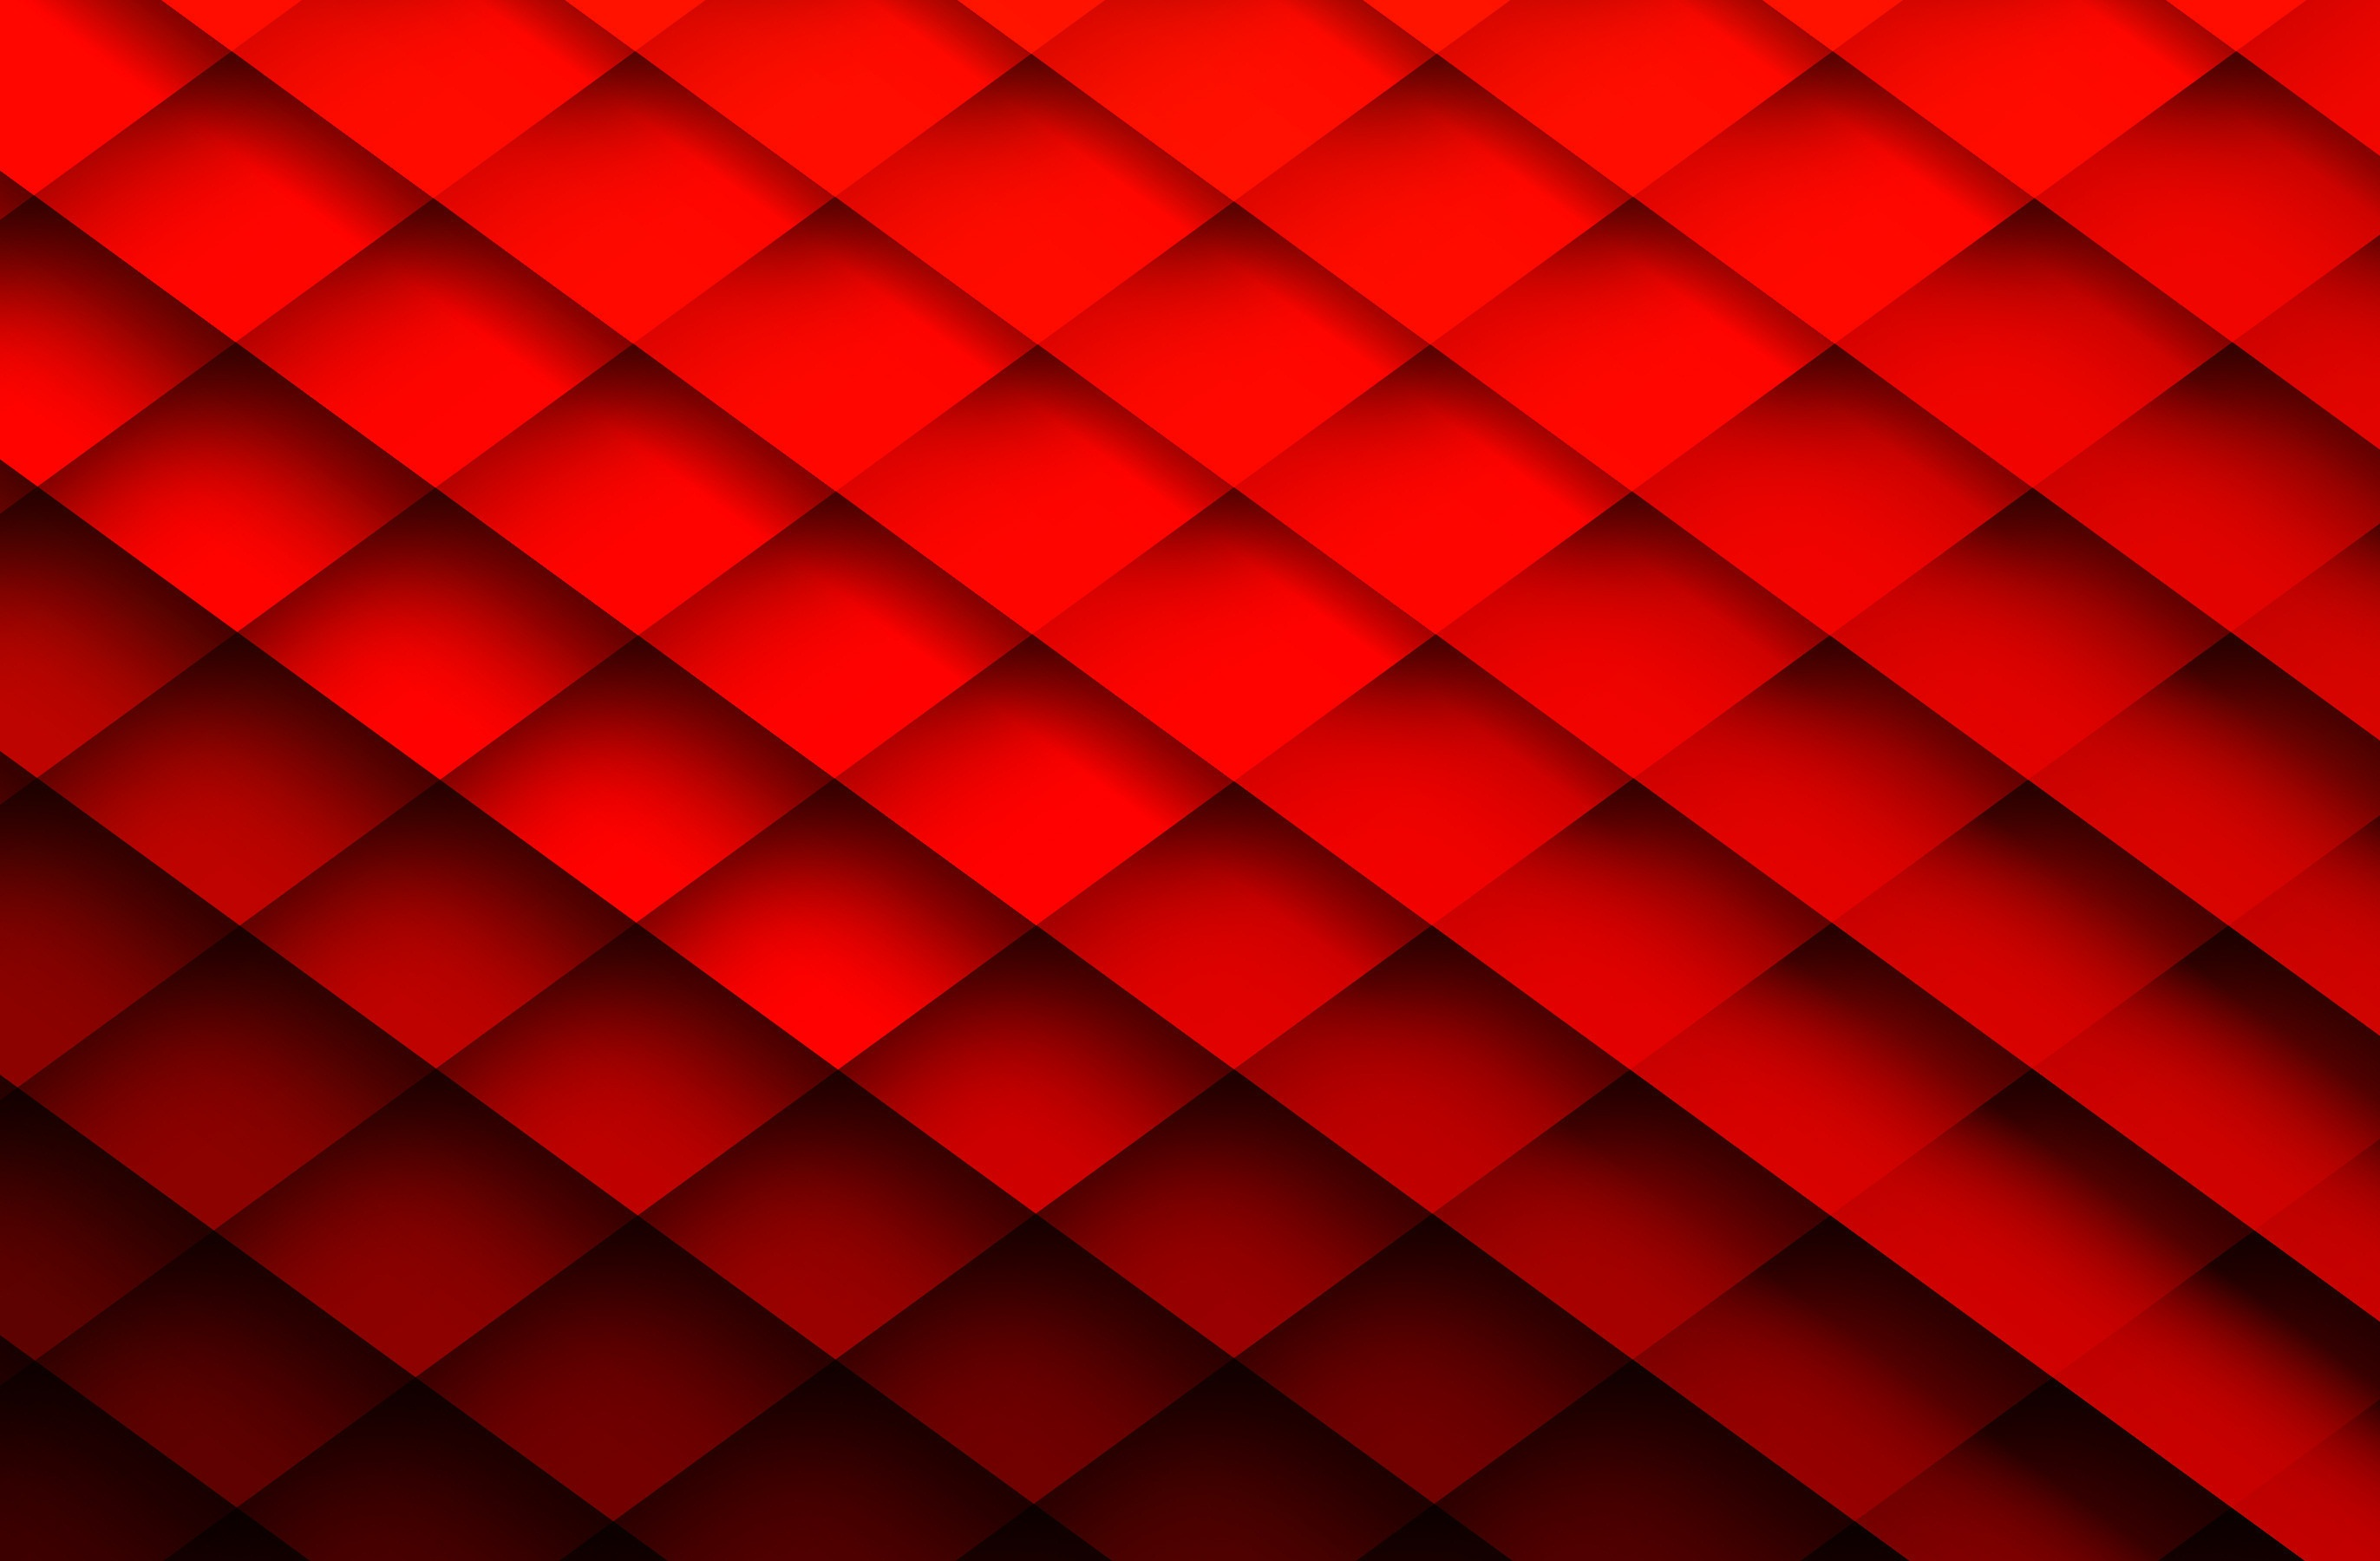 Red Abstract Background 2744x1800